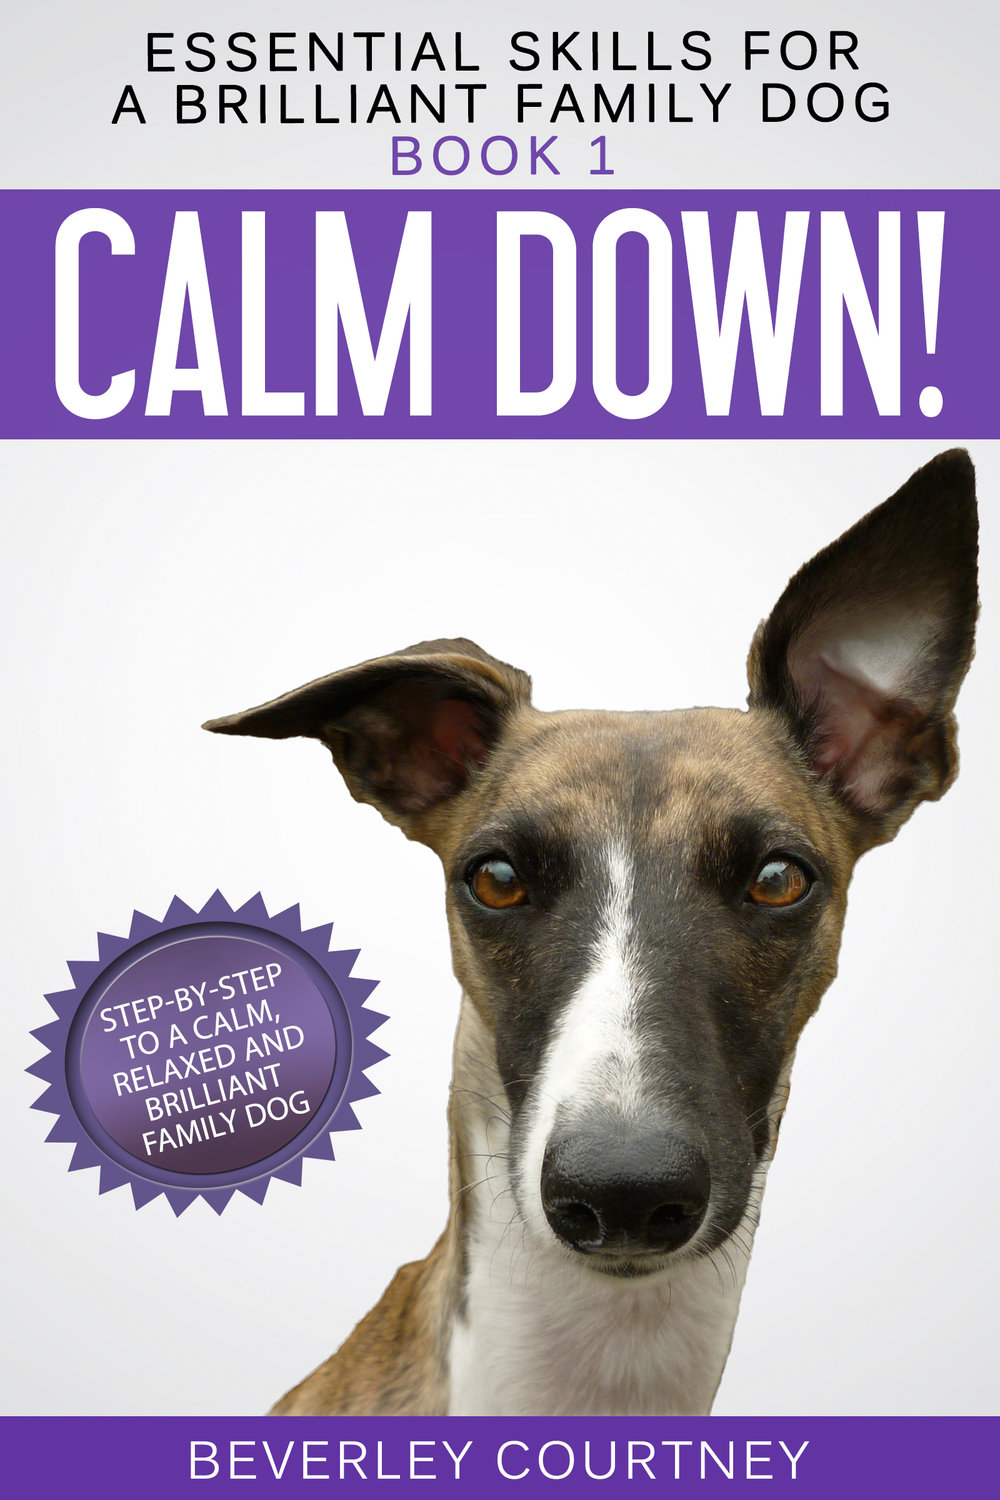 Best dog training ebook download yours today!